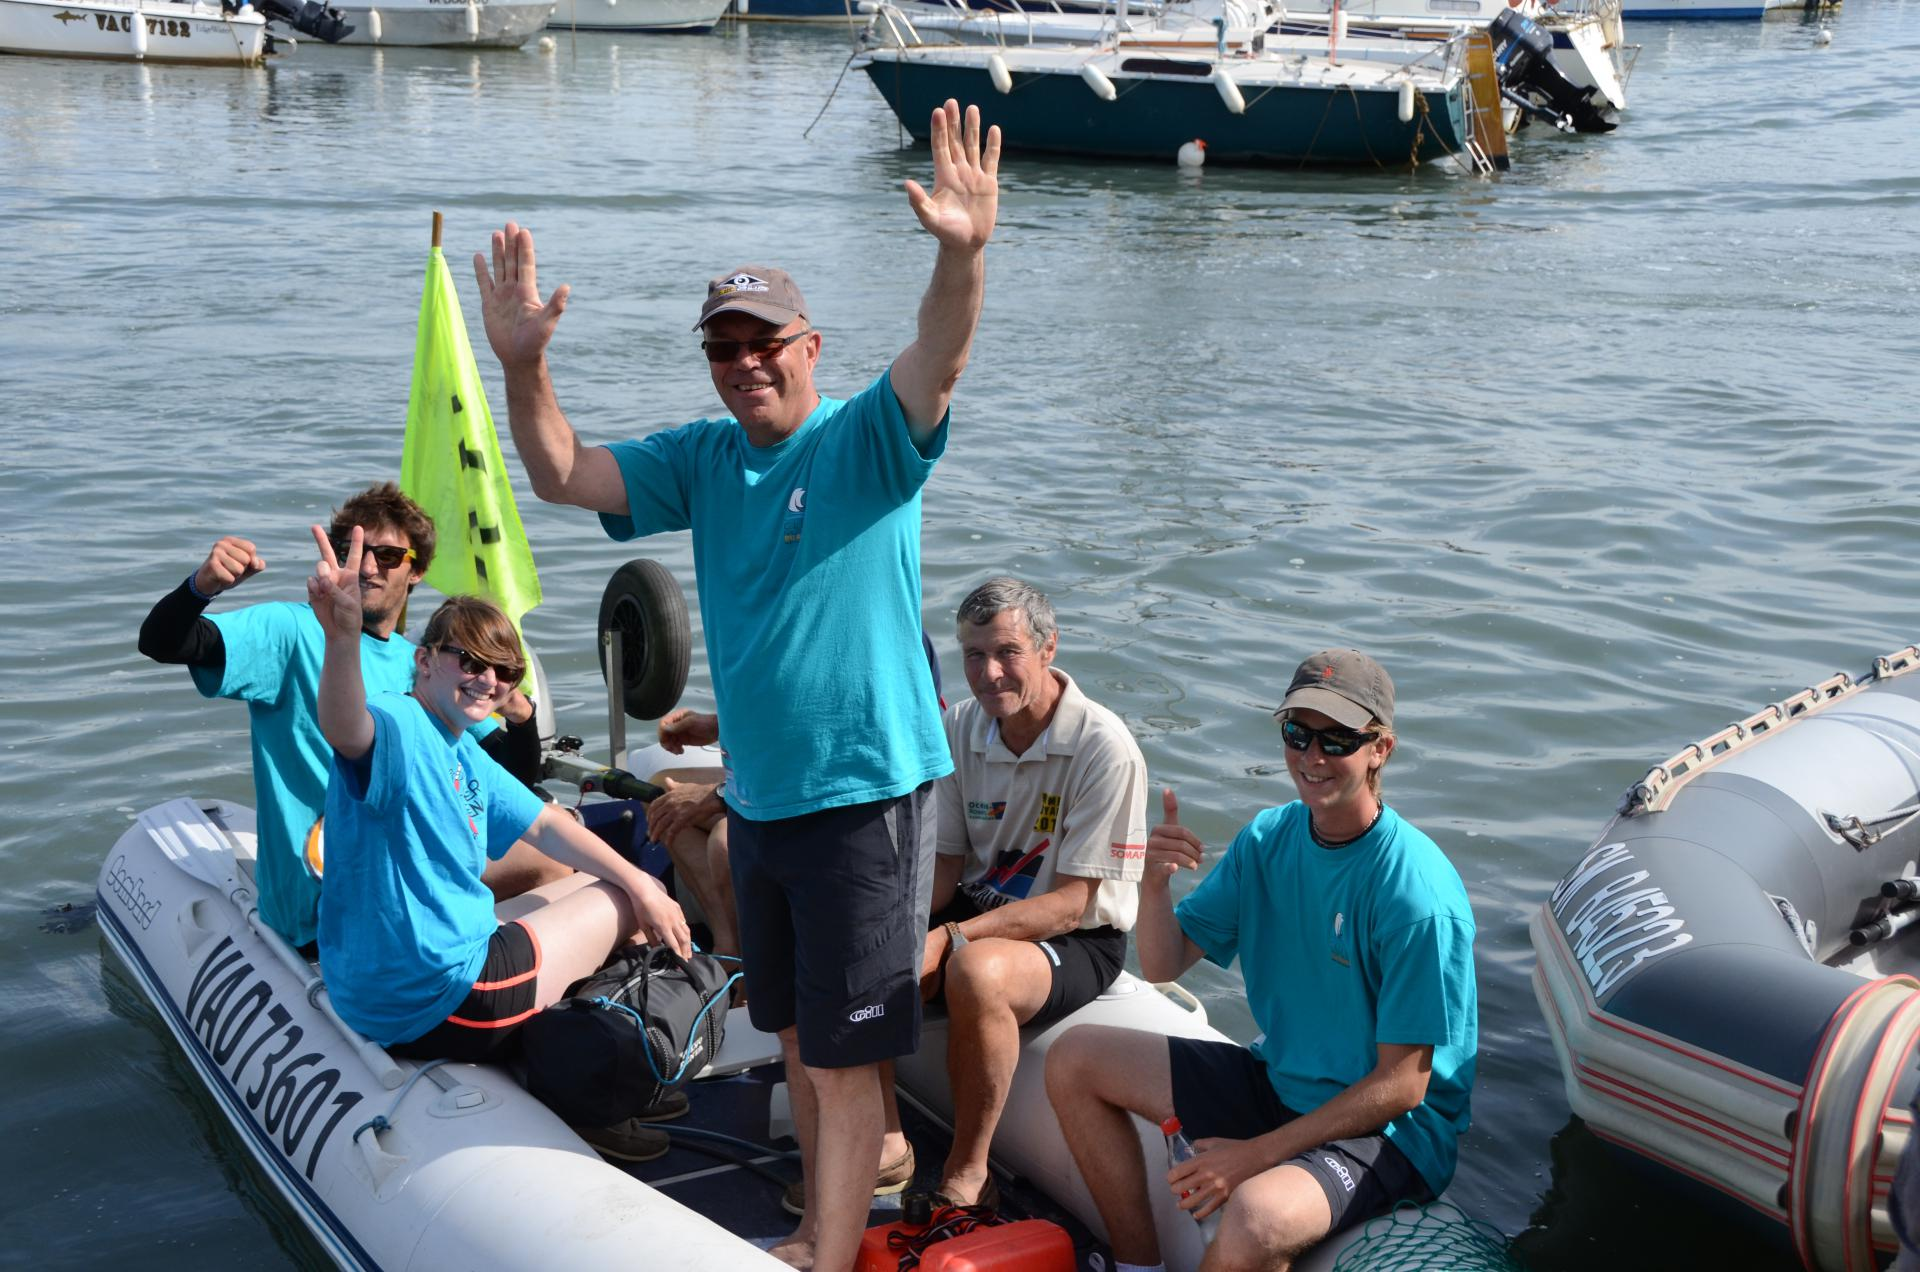 Club Nautique du Rohu - kayaking competition for the instructors